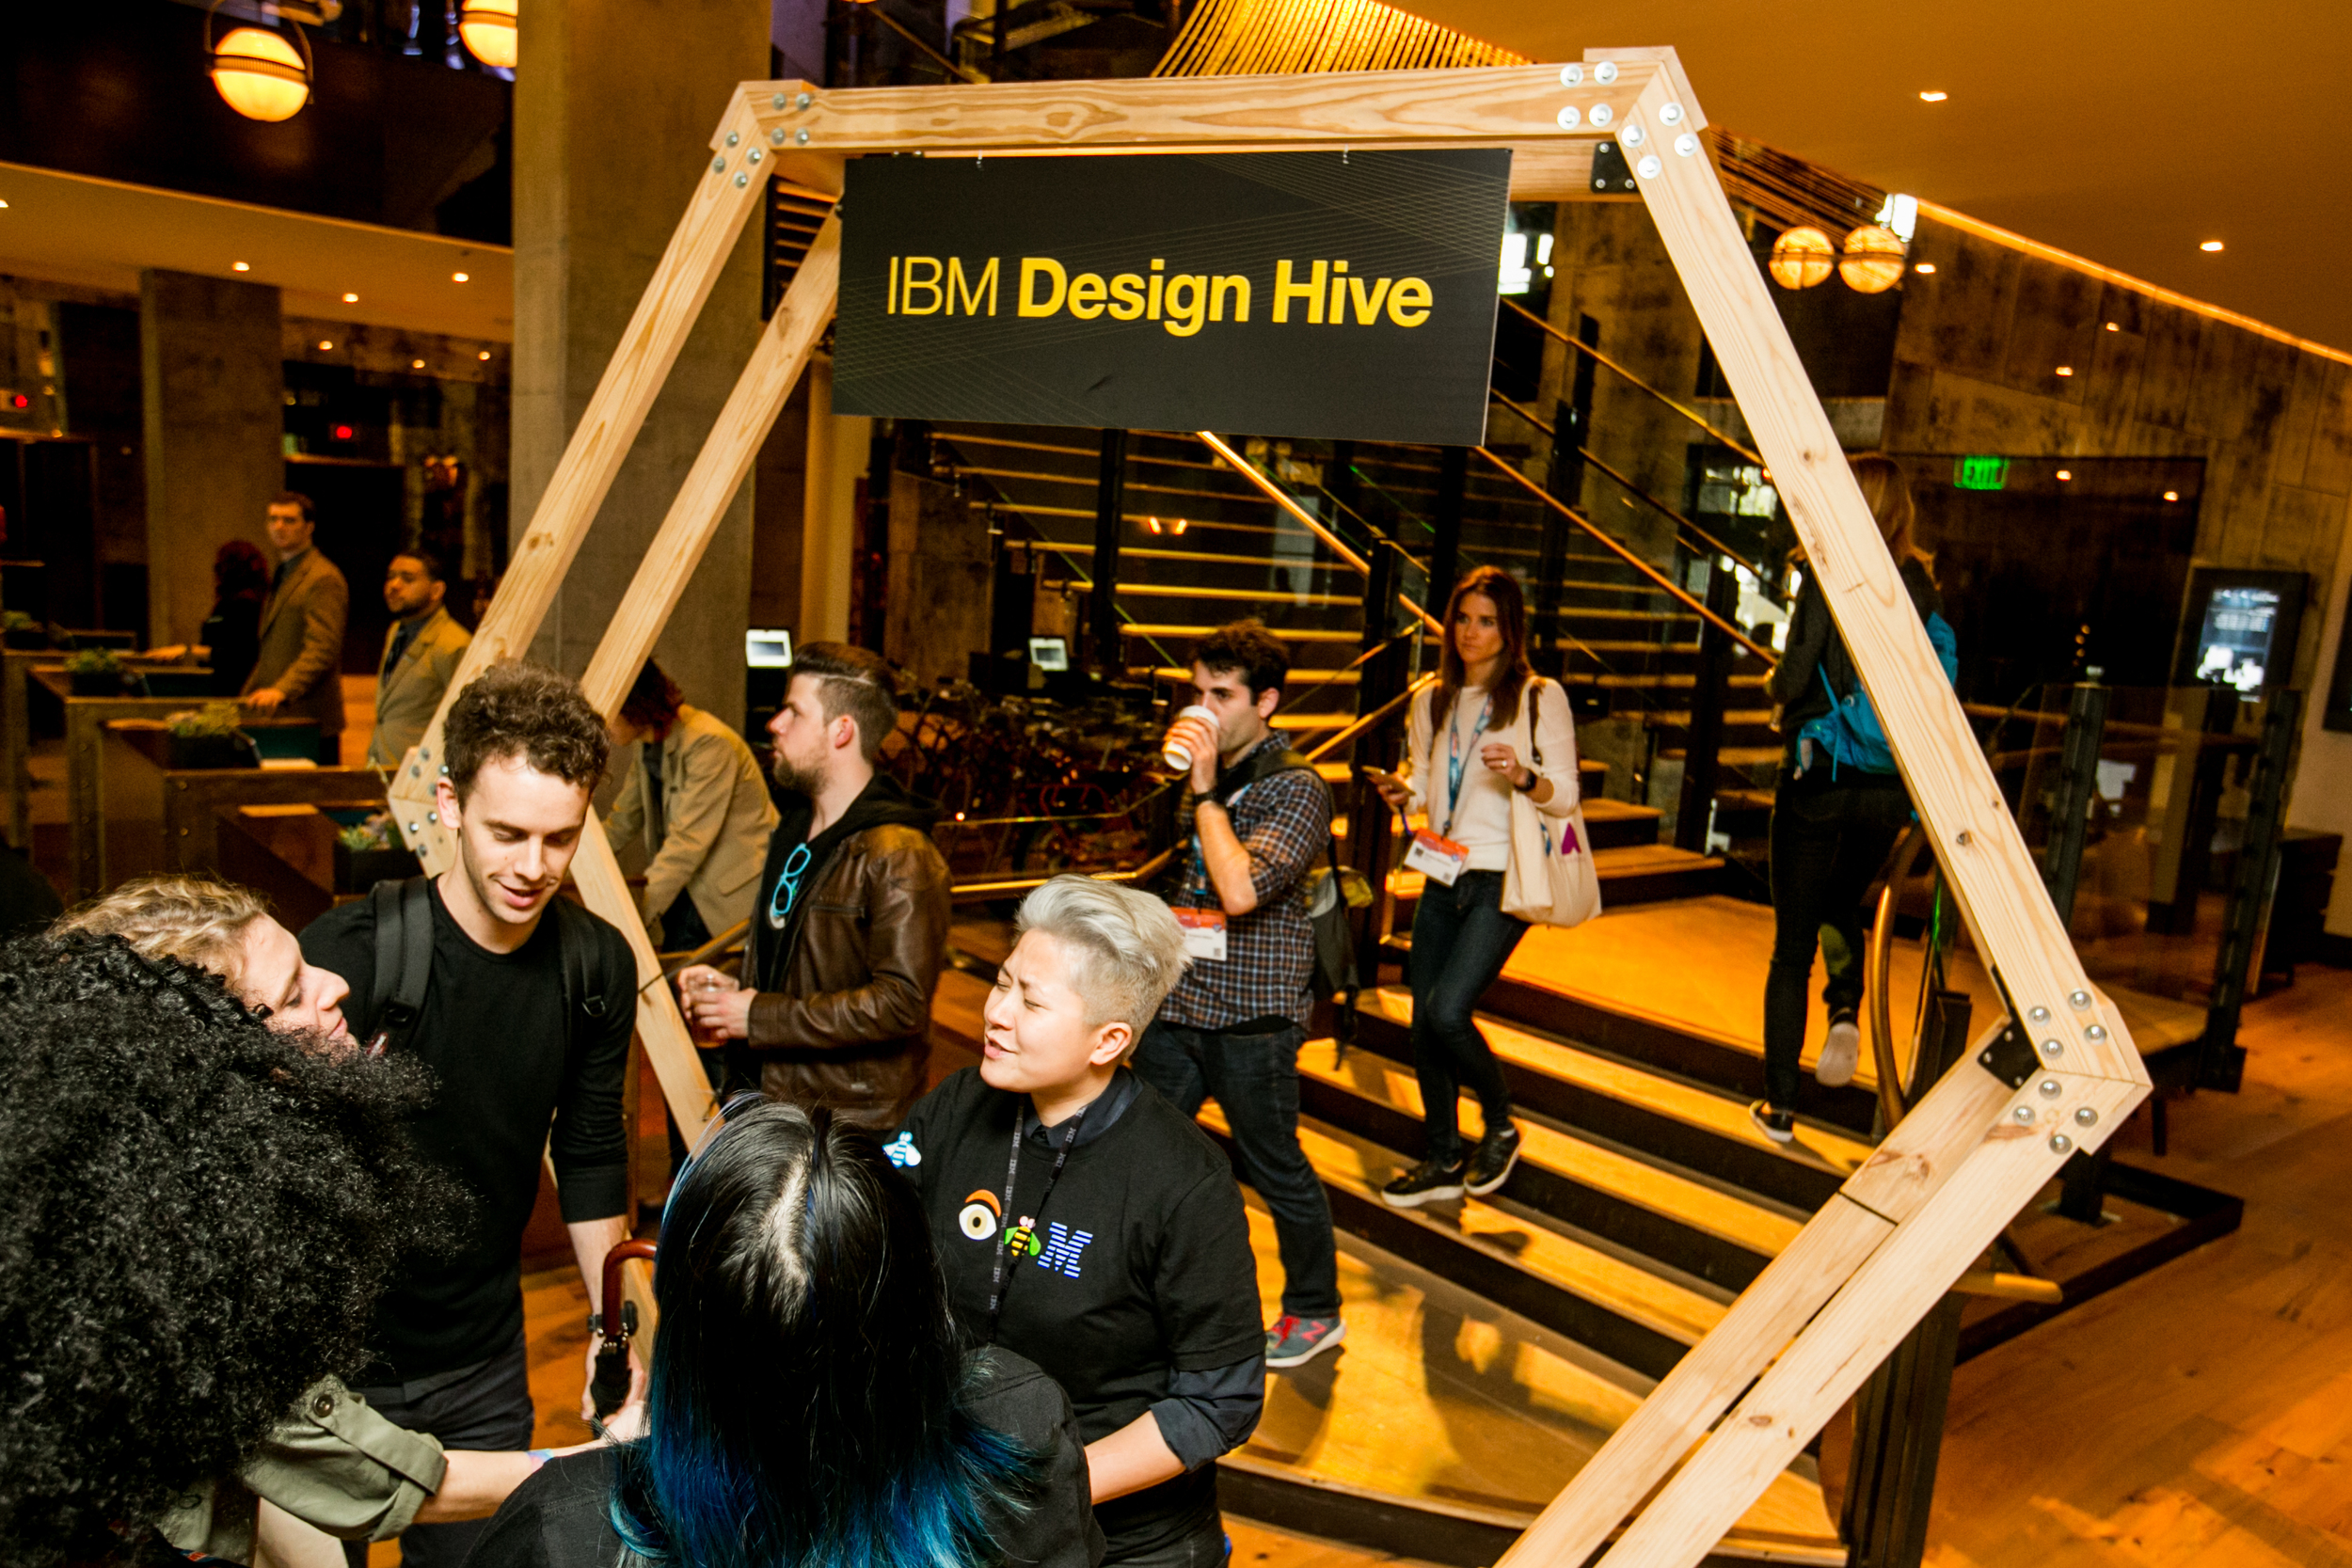 ibm design hive entrance